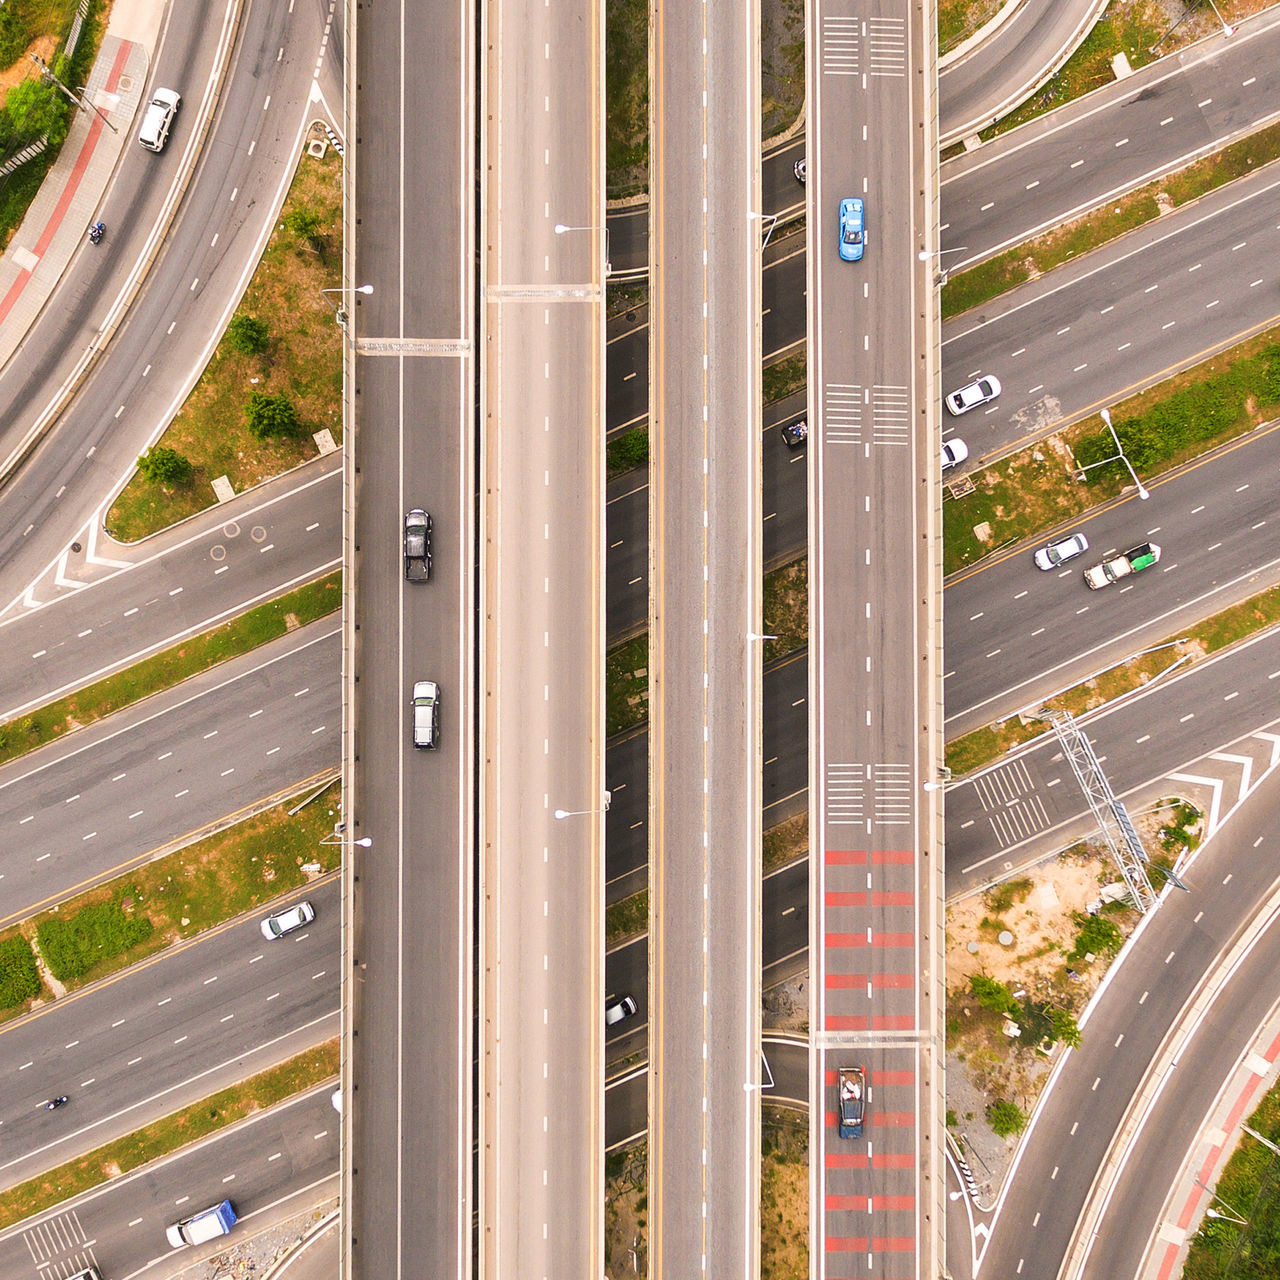 Aerial View Architecture City City Life Cityscape Day Flying High Highway Mode Of Transport No People Outdoors Traffic Transportation Travel